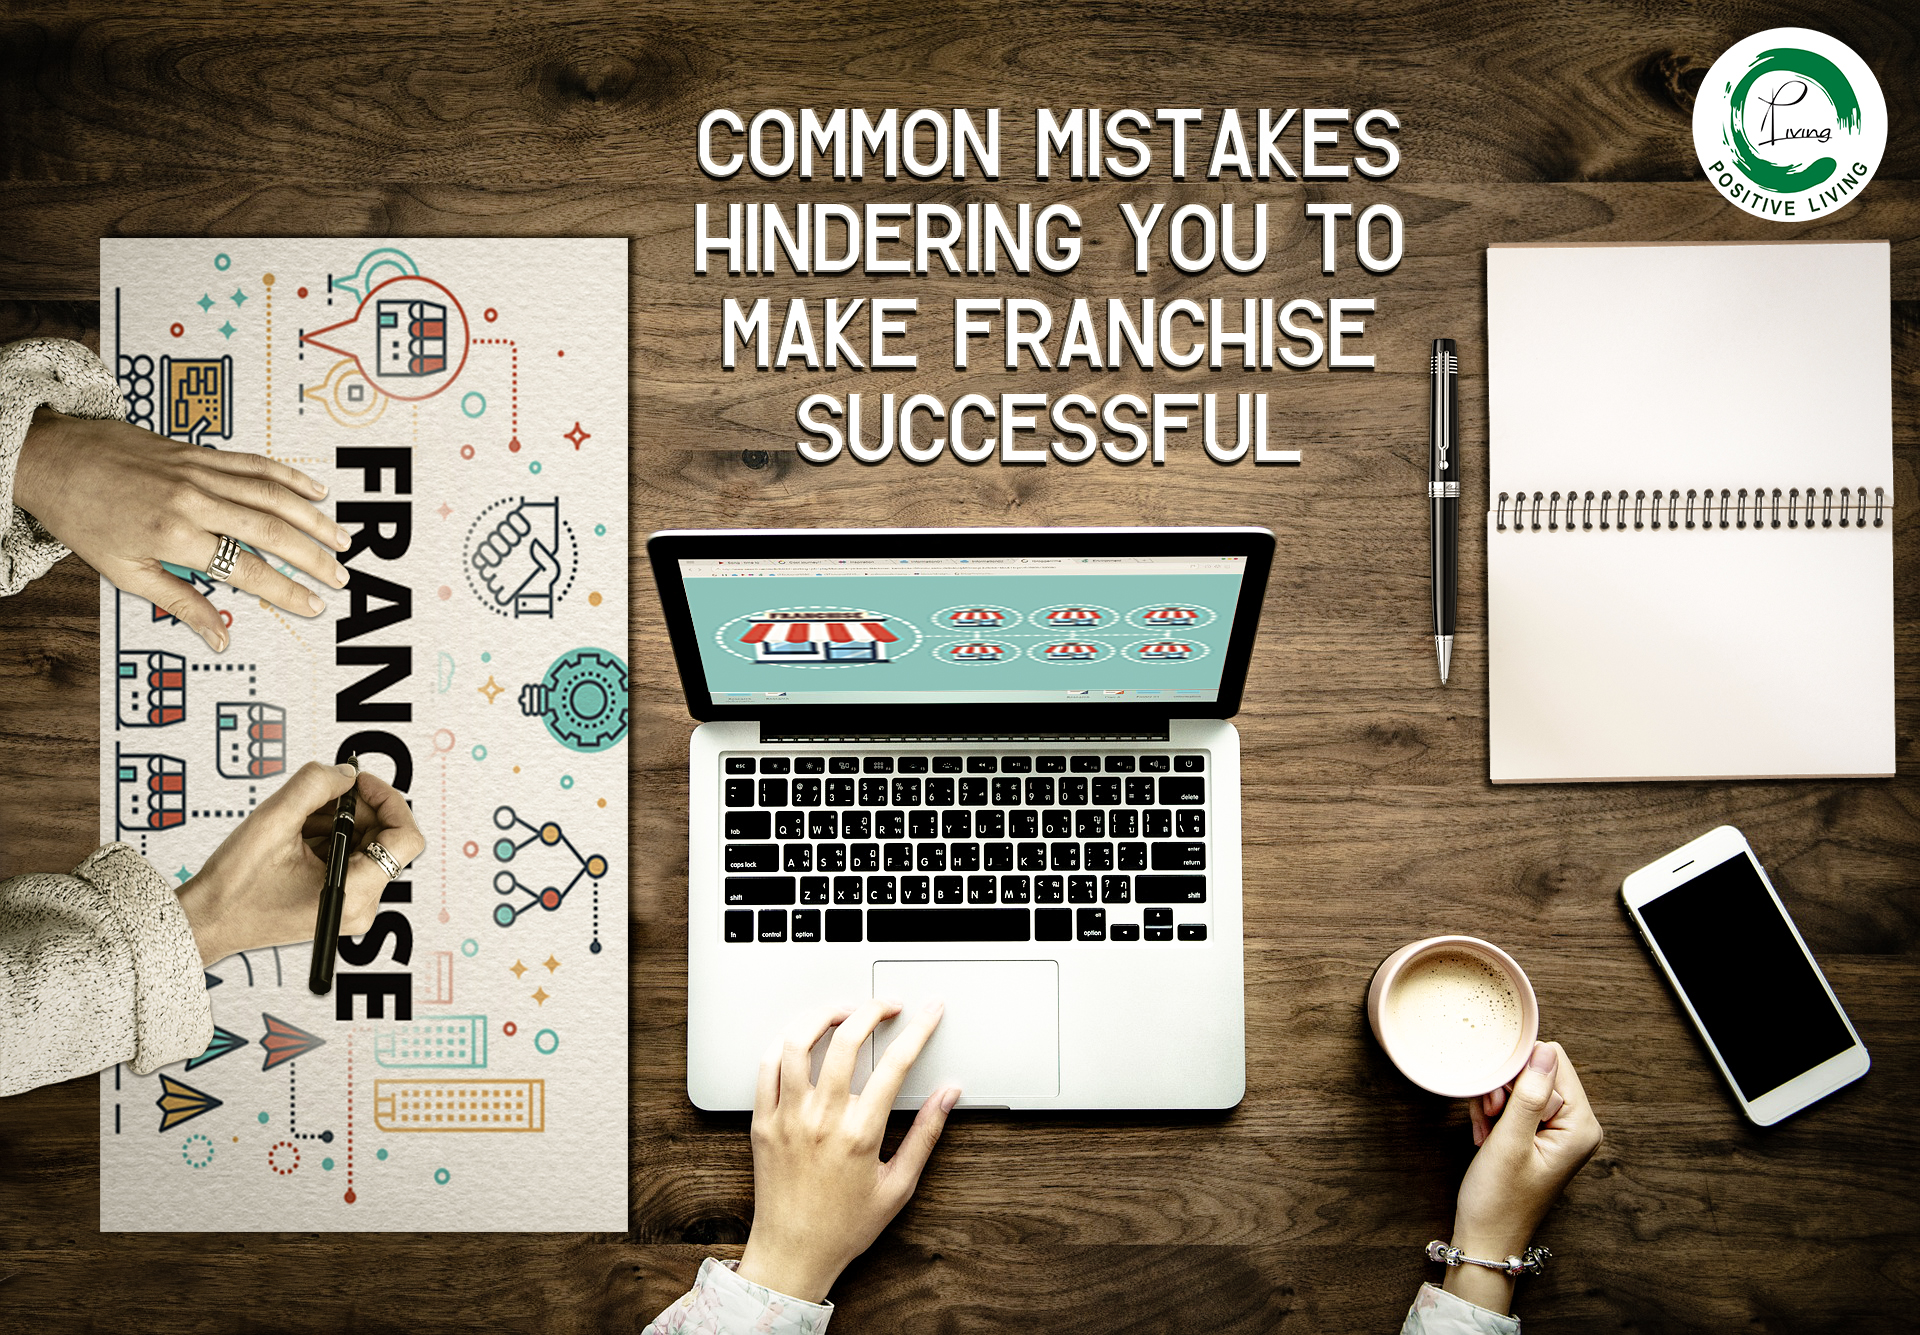 Common_mistakes_hindering_you_to_make_franchise_successful